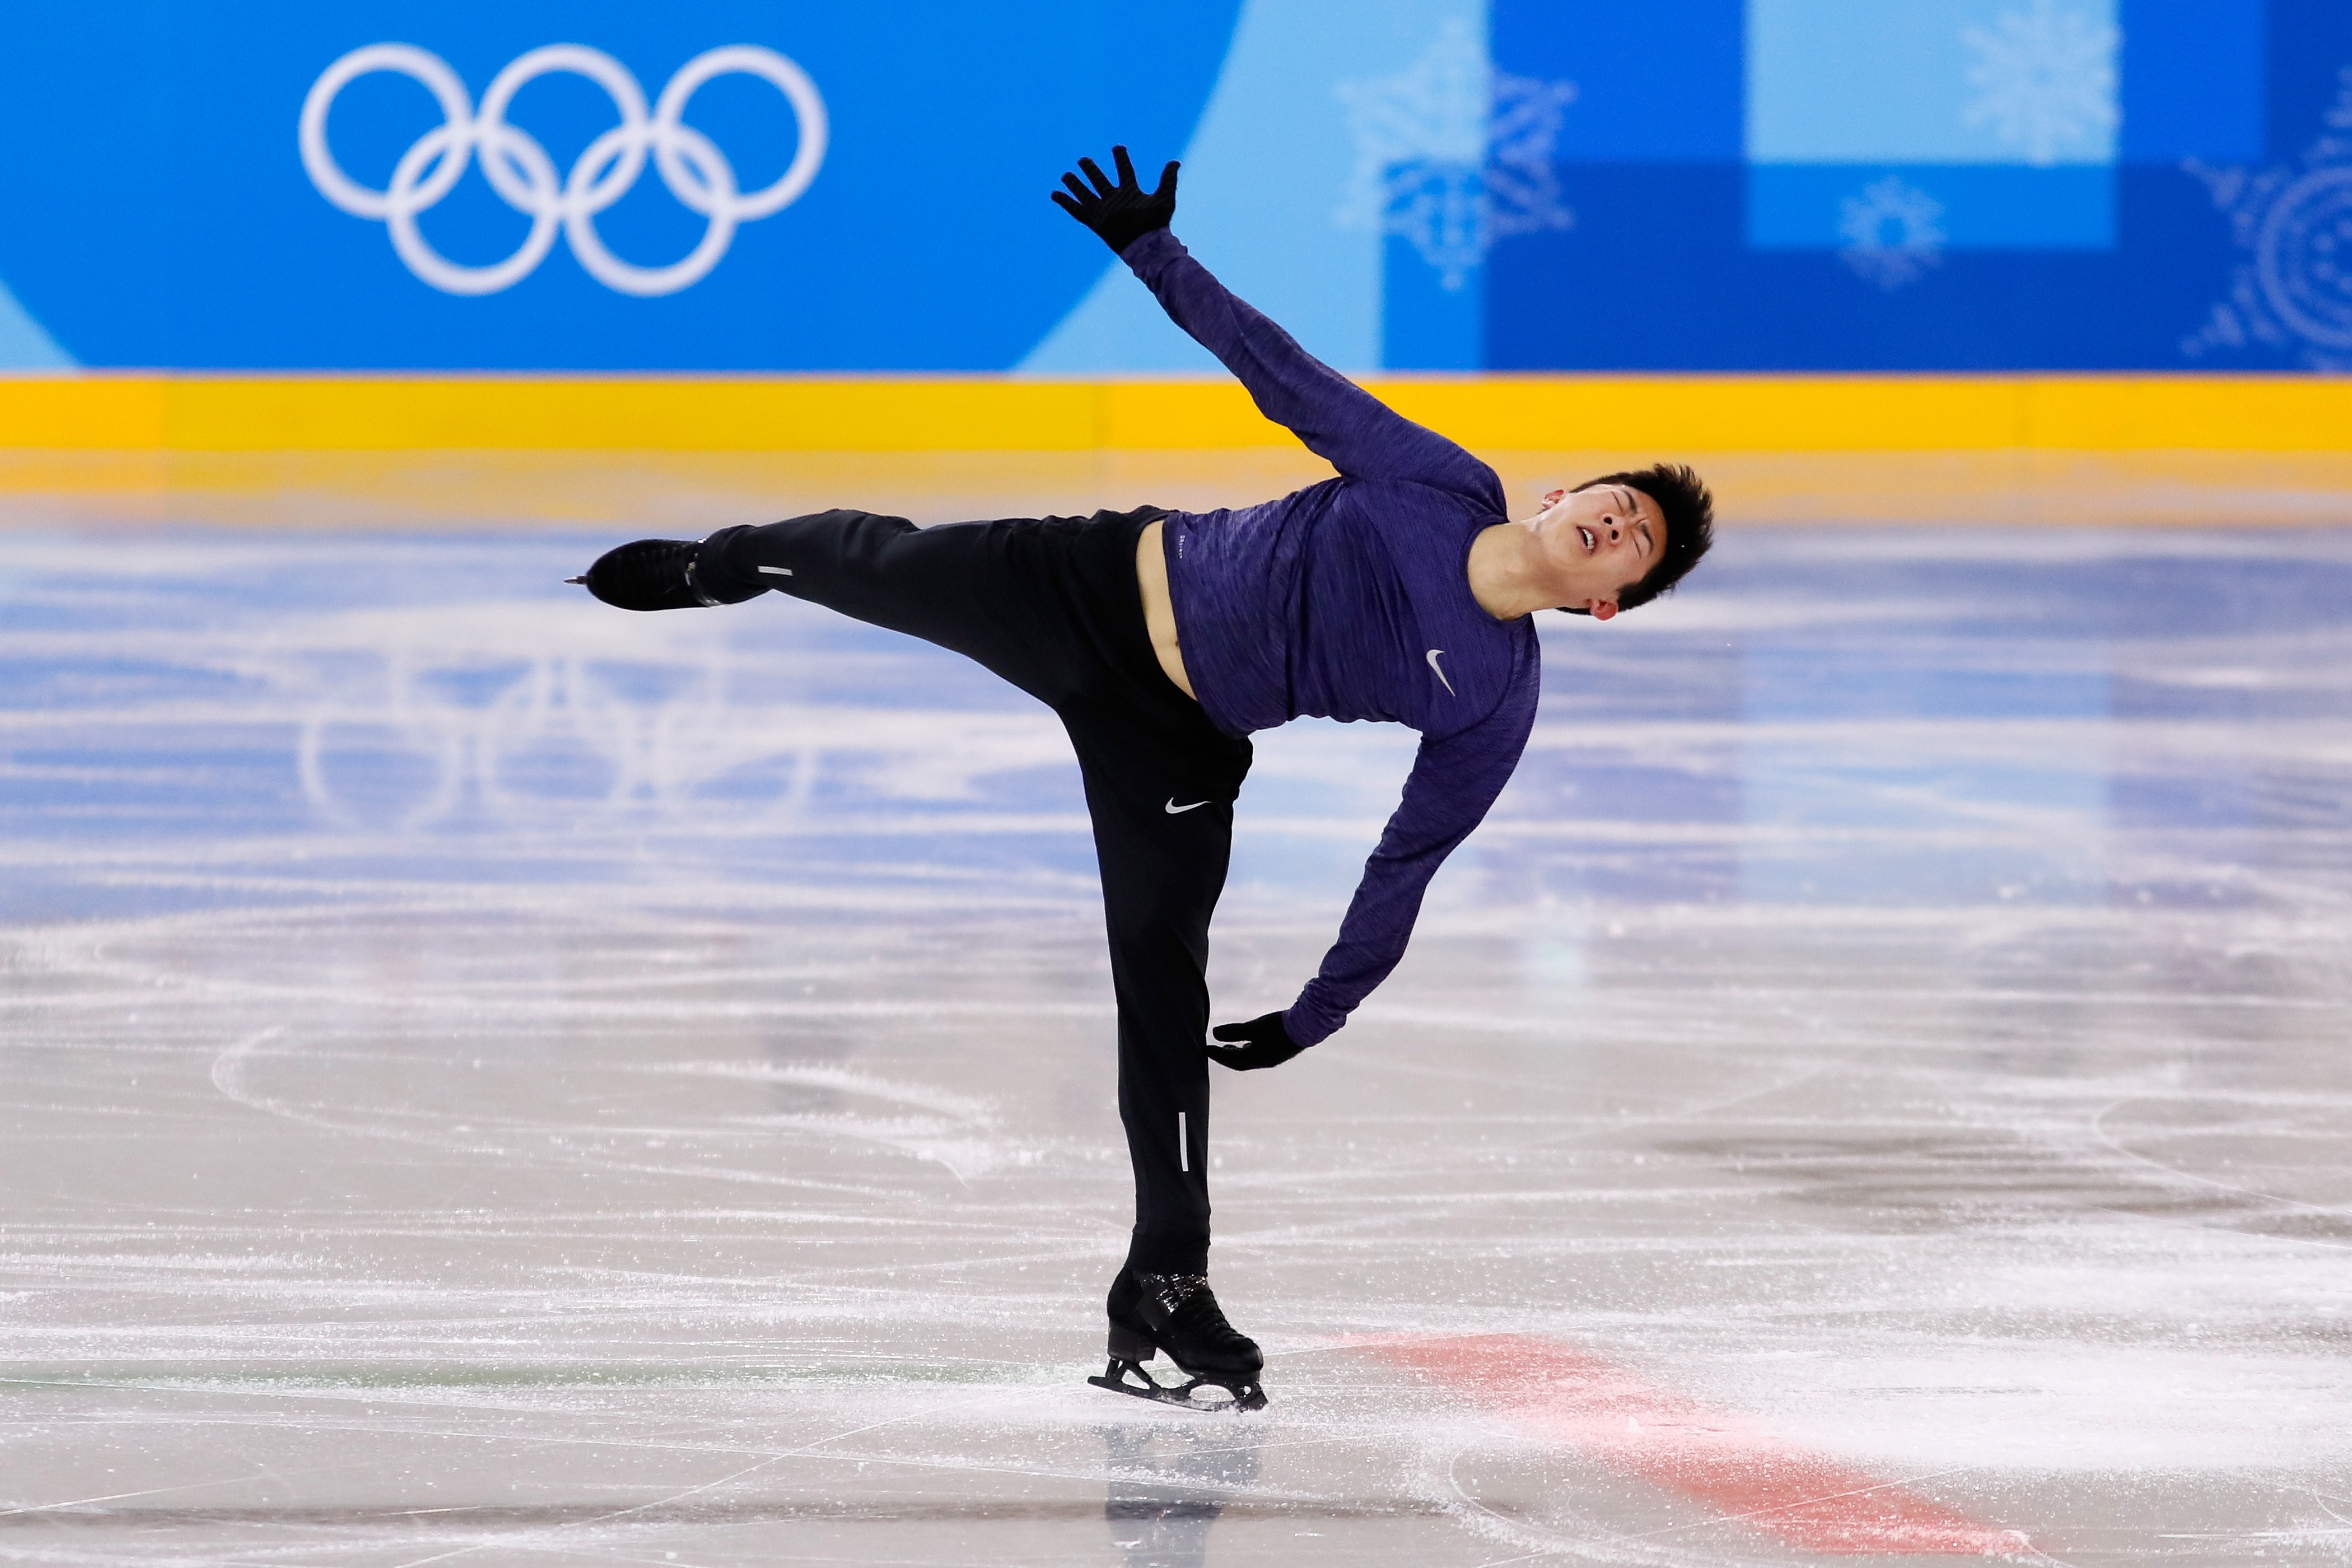 Nathan Chen of the United States trains during figure skating practice ahead of the Pyeongchang 2018 Winter Olympic Games in South Korea. (Jamie Squire/Getty Images)